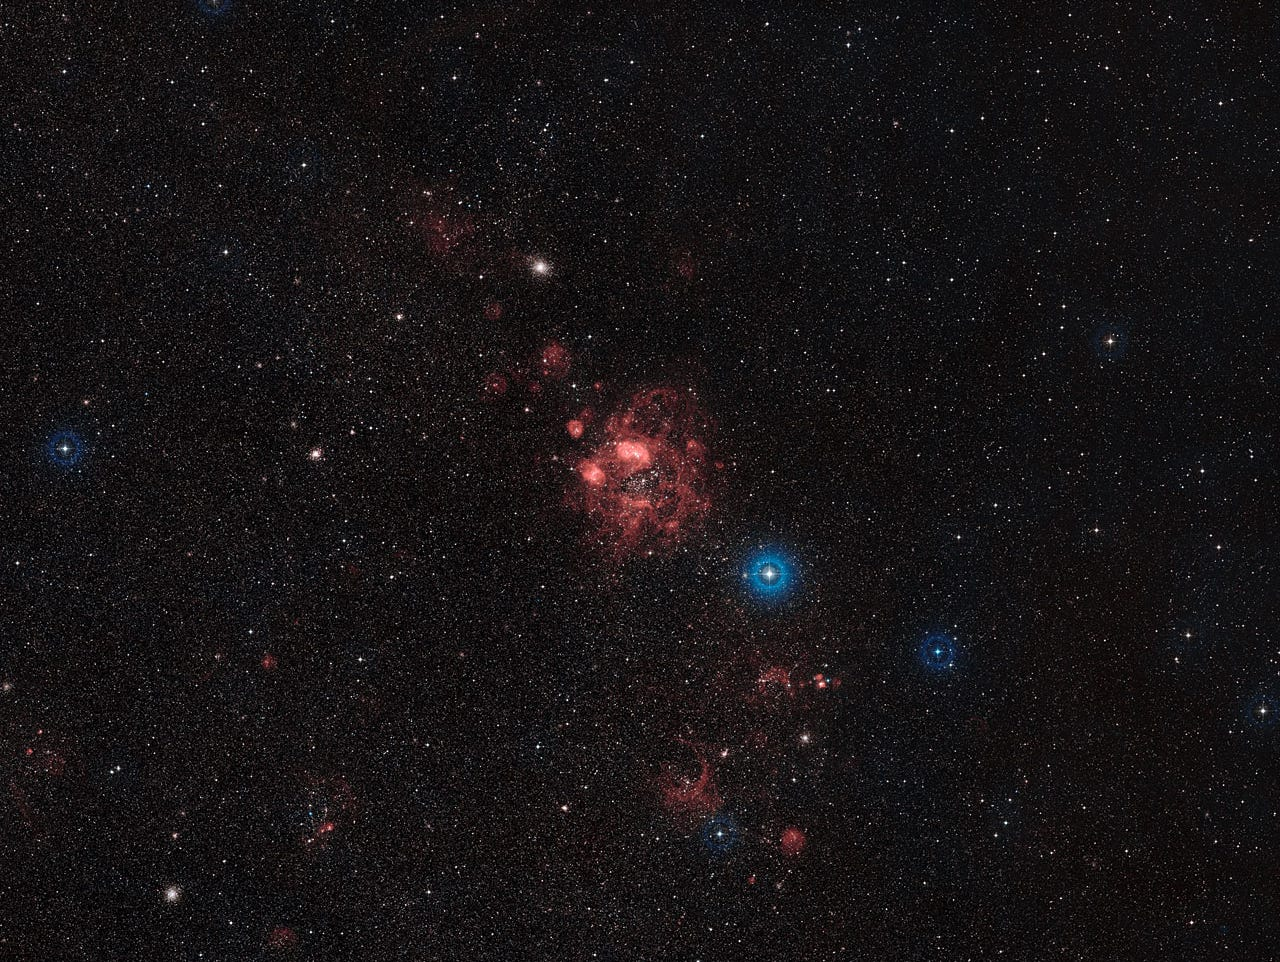 A wide field view of part of the Large Magellanic Cloud, including the N11 star-formation region.